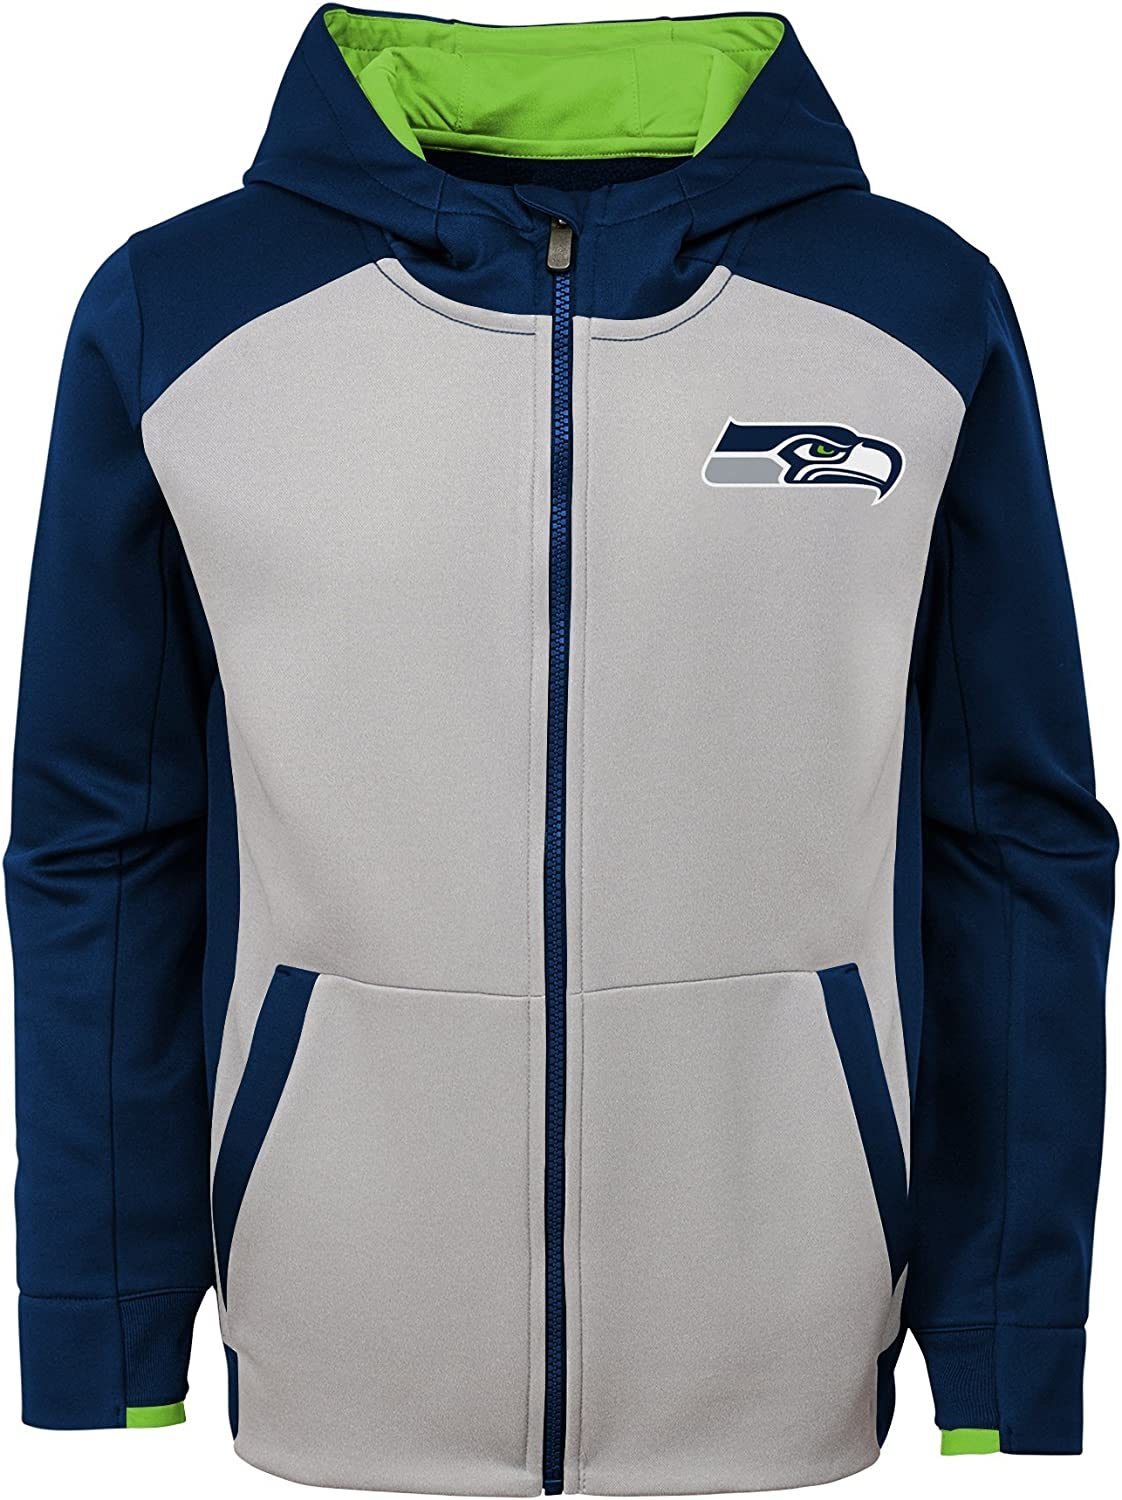 14-16 Team Color NFL Seattle Seahawks Boys Outerstuff Hi Tech Performance Full Zip Hoodie Youth Large